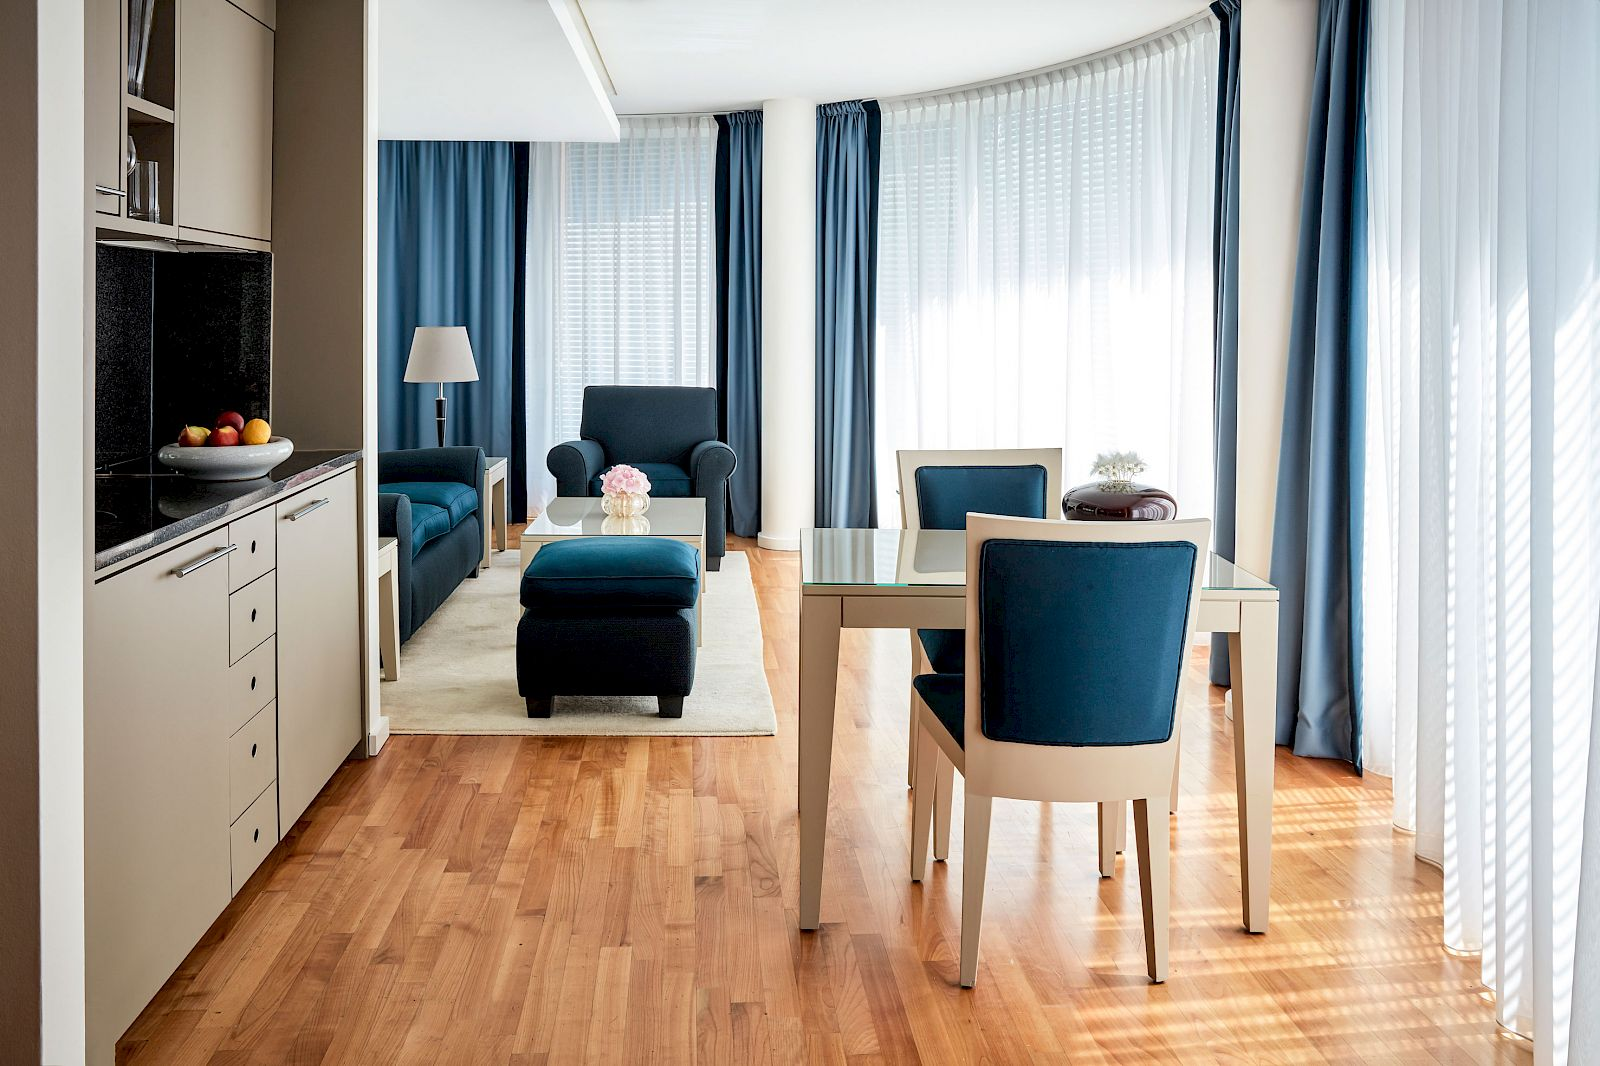 Enjoy your days in Berlin at Potsdamer Platz in our Mandala Suite